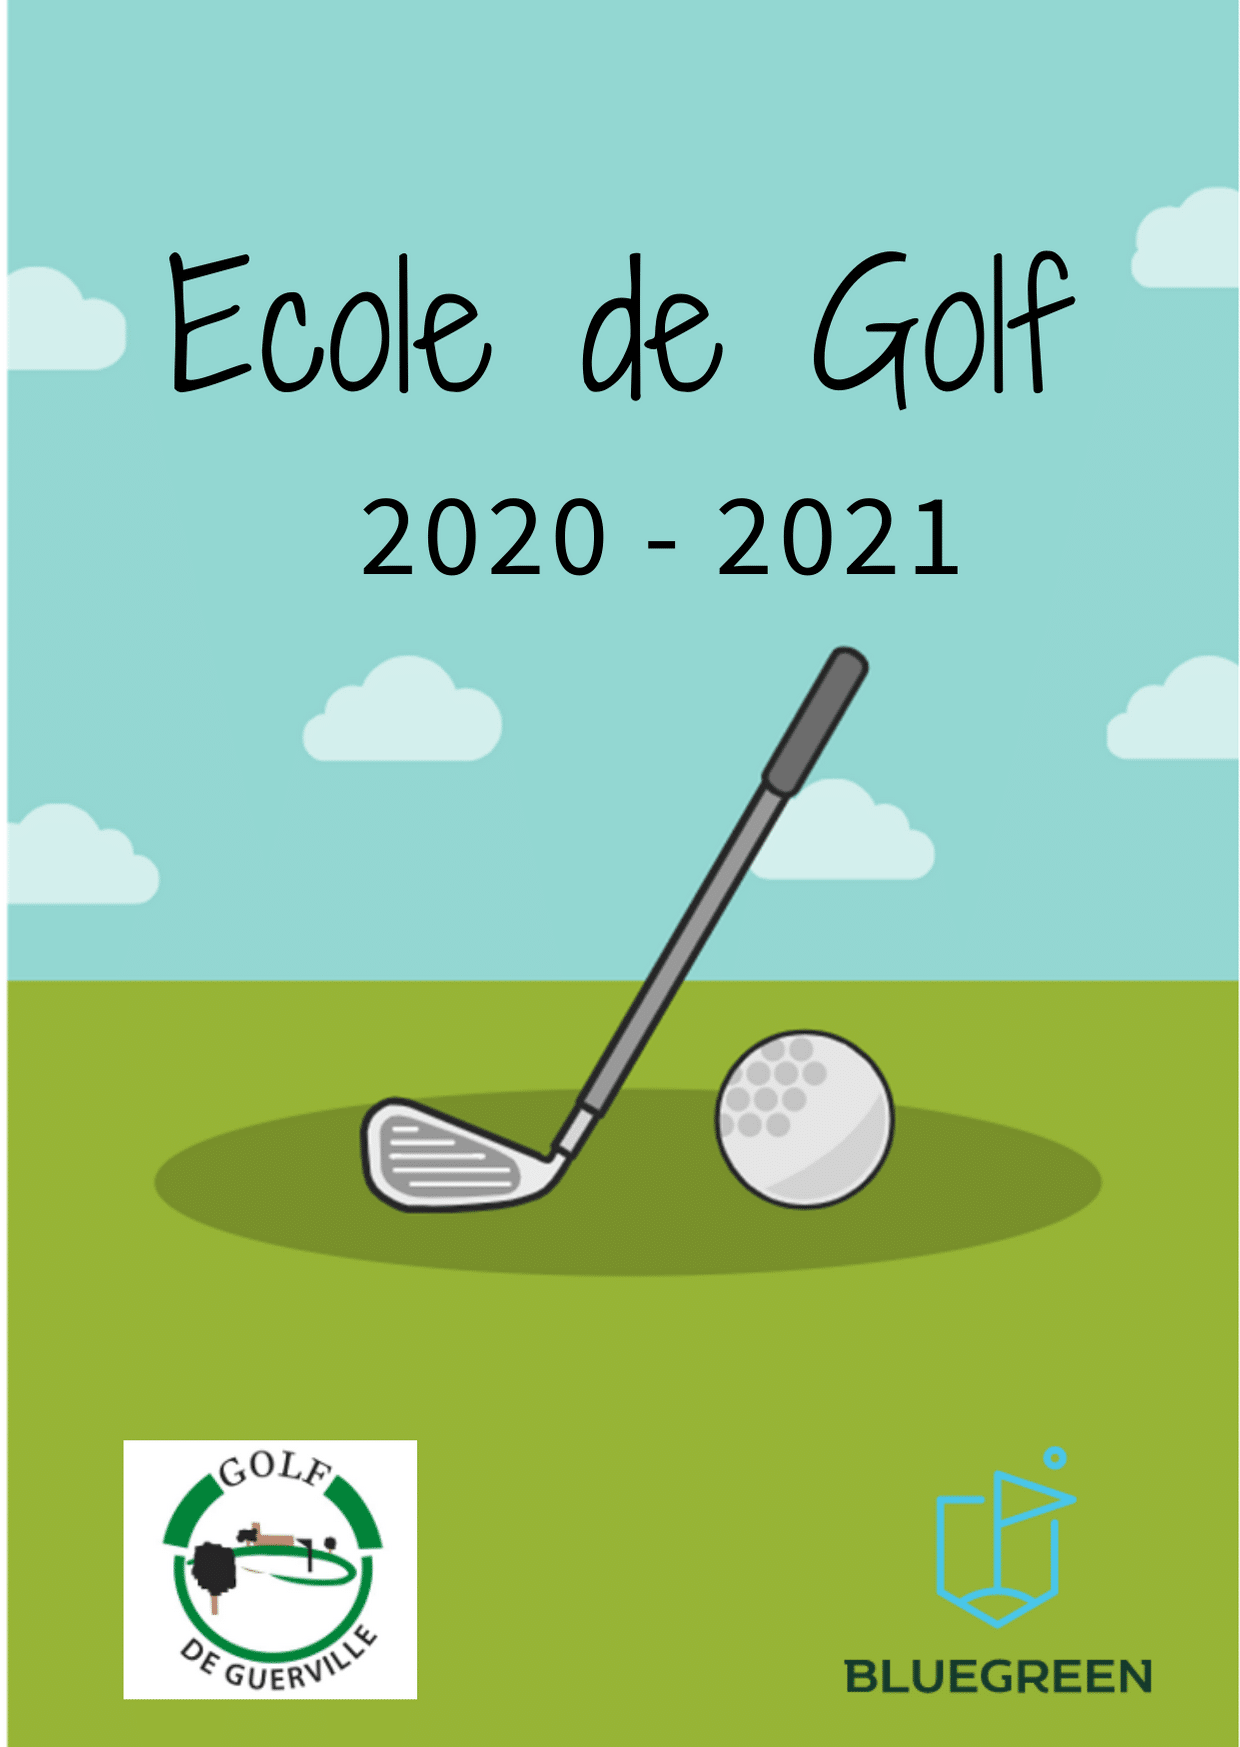 Golf Bluegreen Guerville